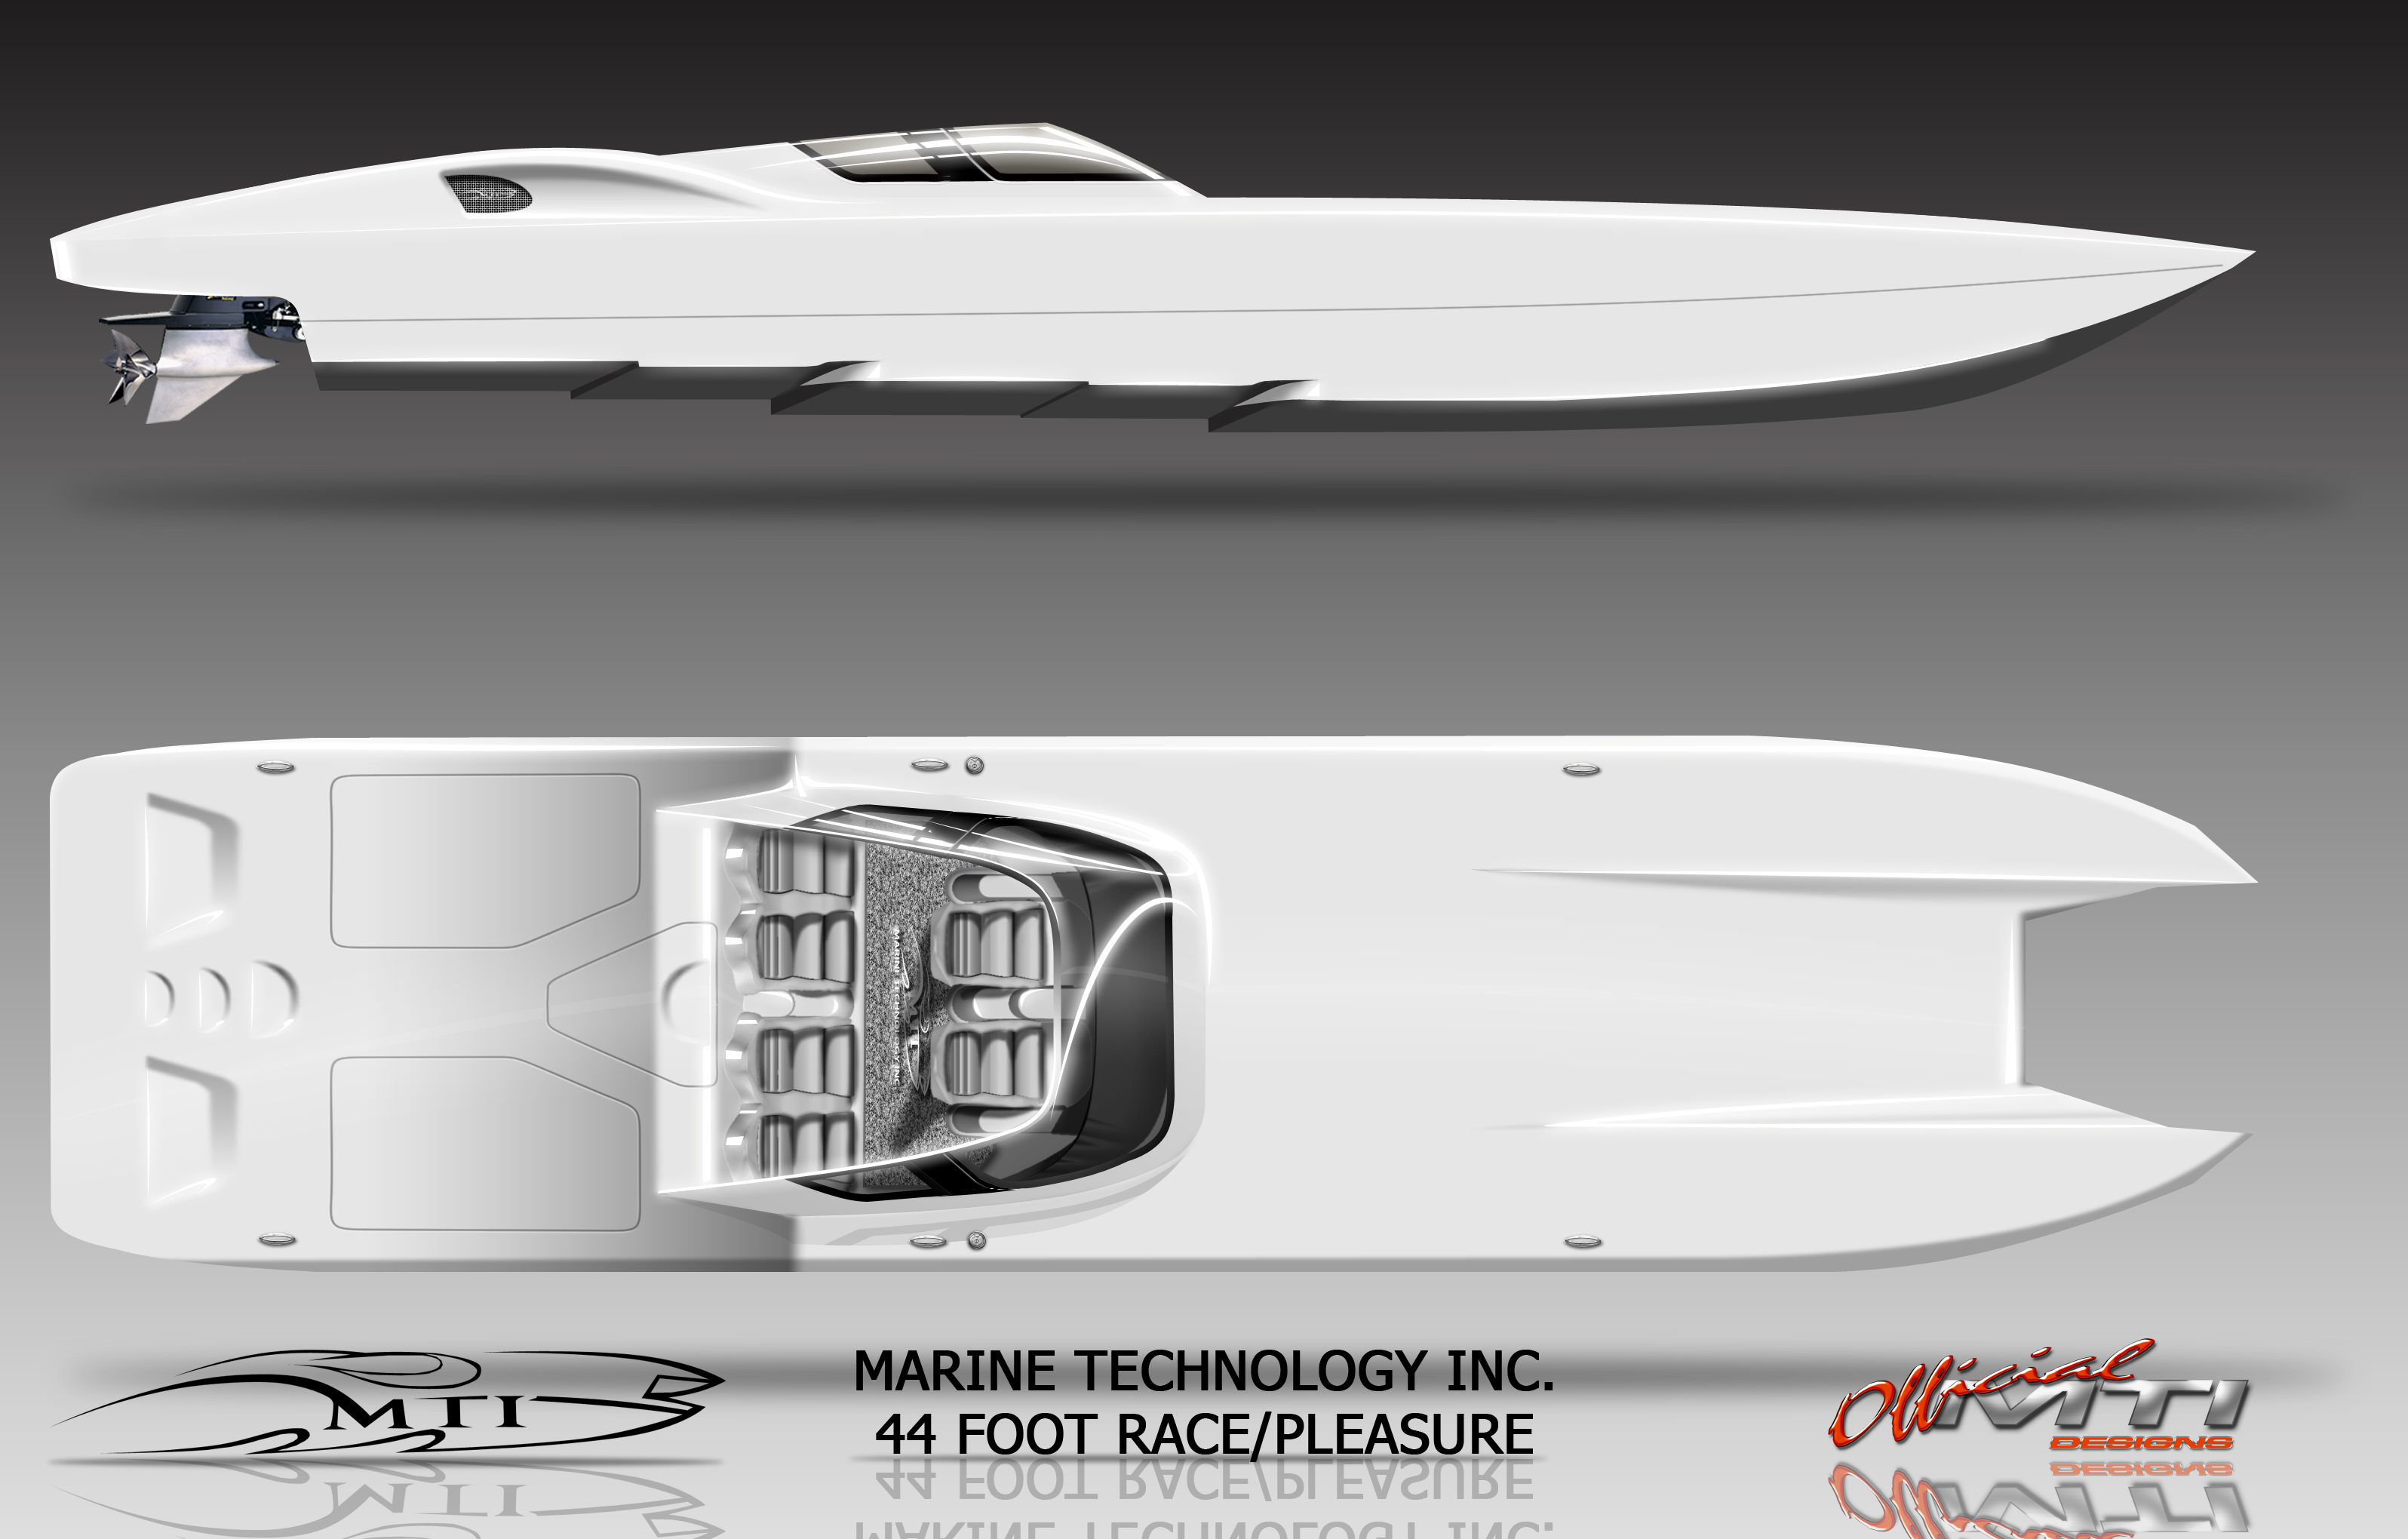 44 mti cat image from google - marinetechnologygroup.com)